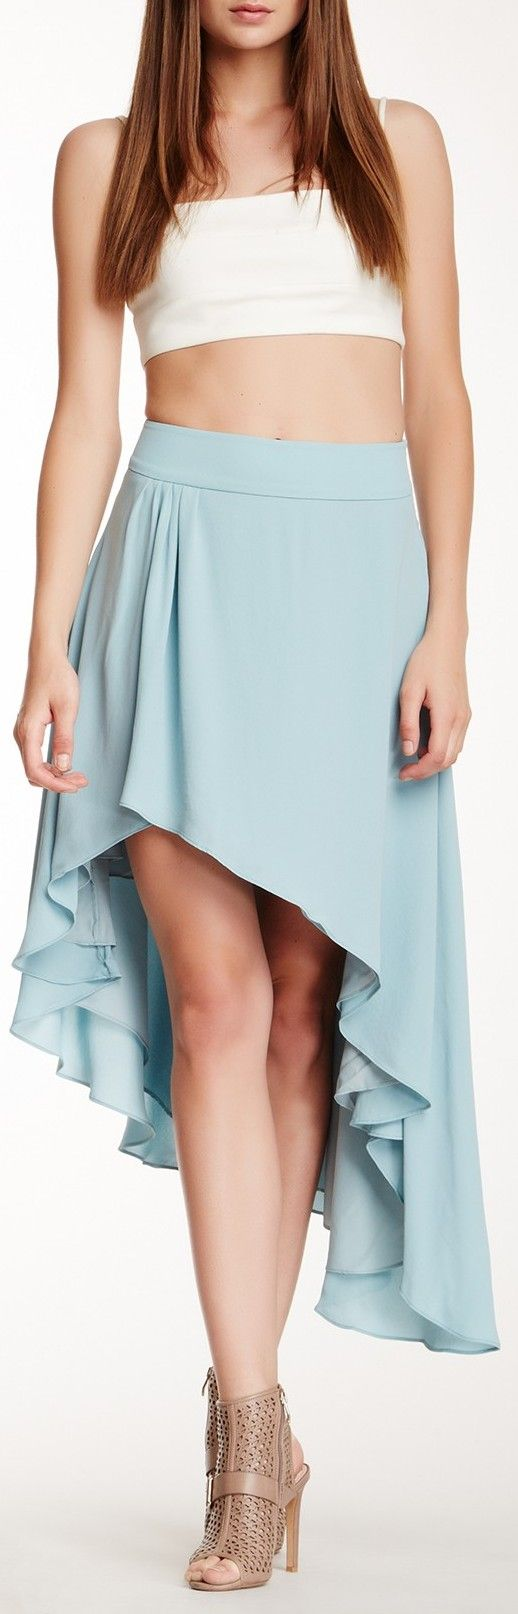 Love the skirt! But you know paired with an actual shirt! :)